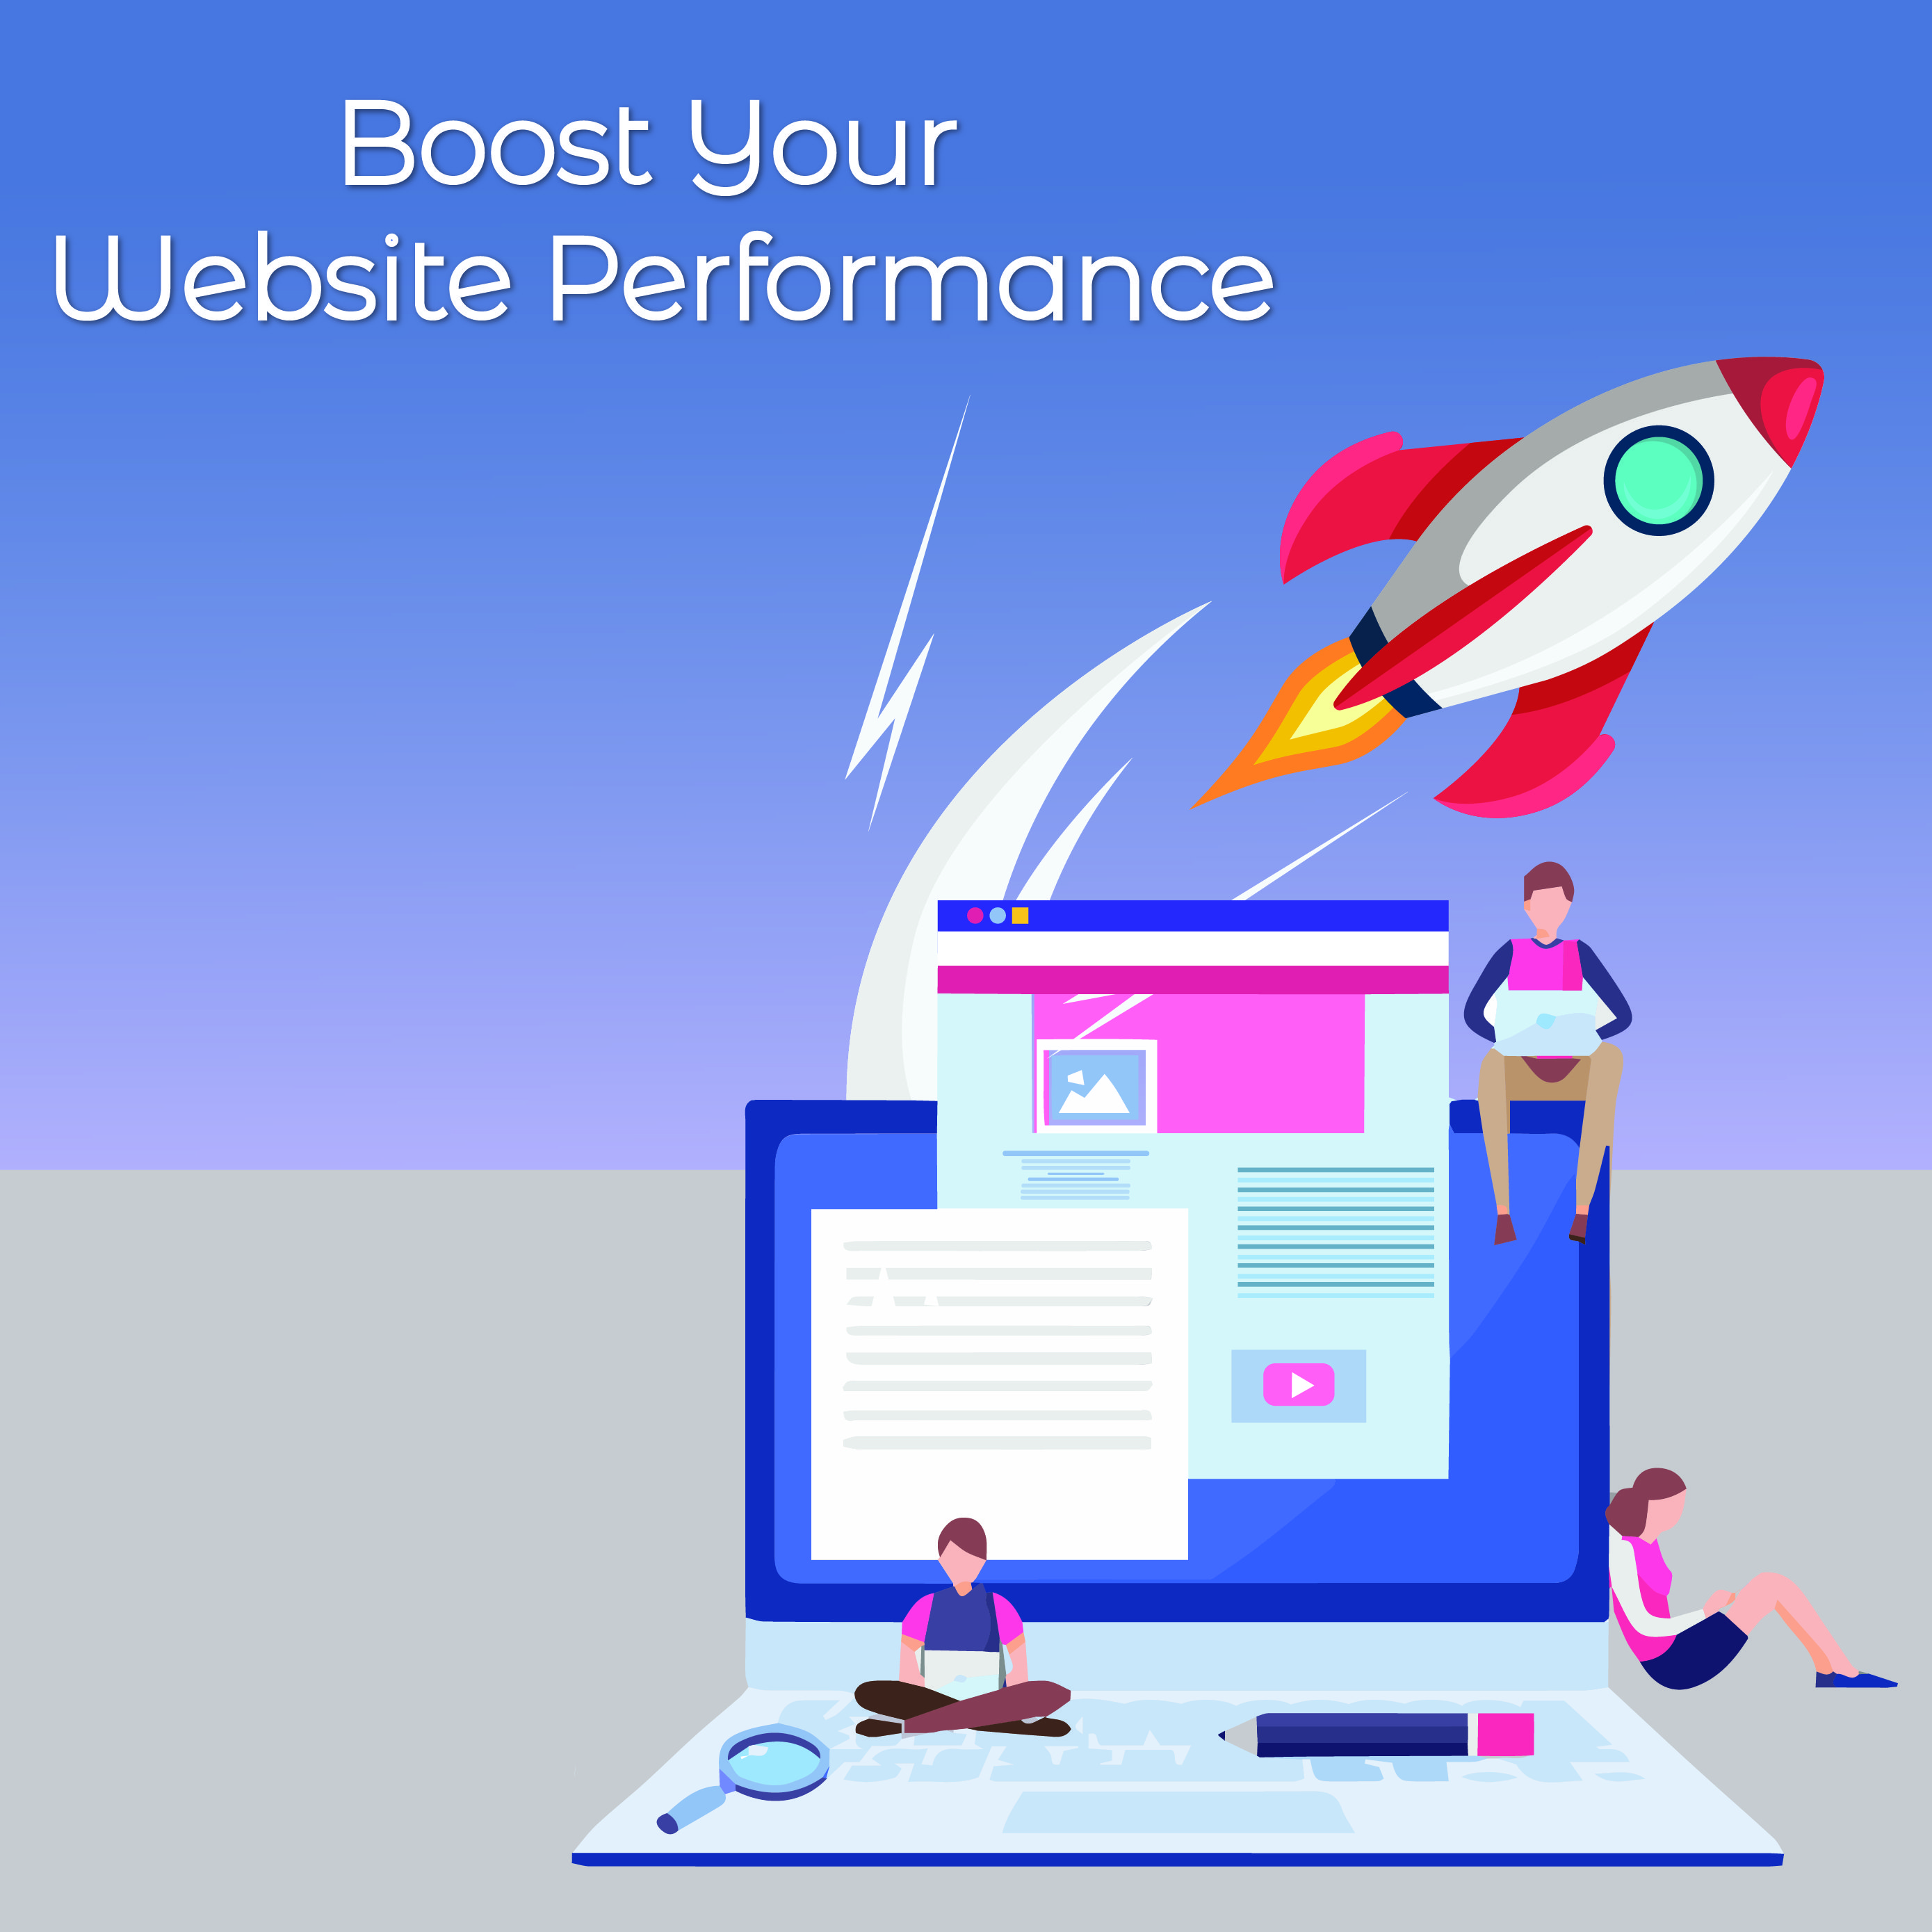 Boost Your Website Performance